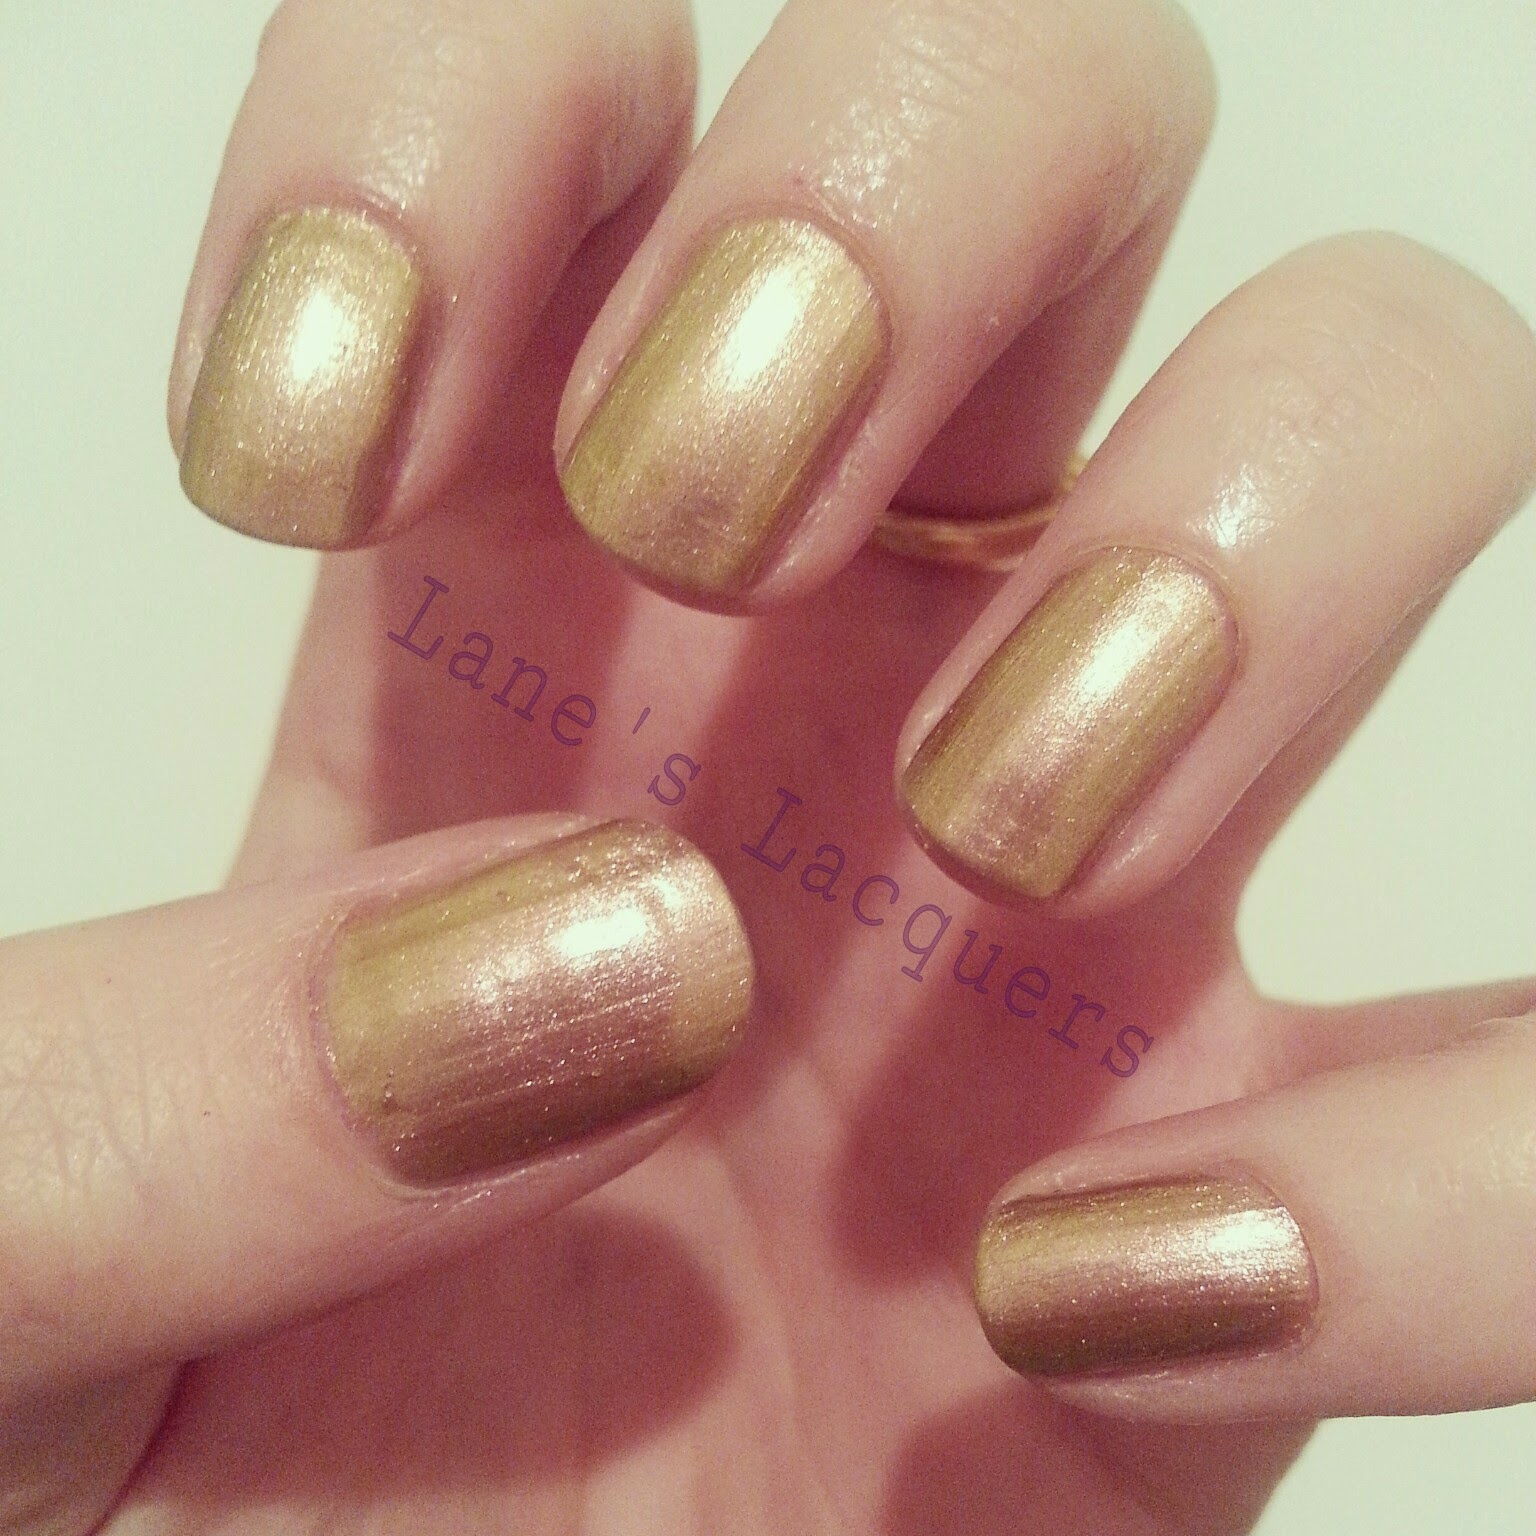 barry-m-aquarium-gold-aqnp3-swatch-manicure